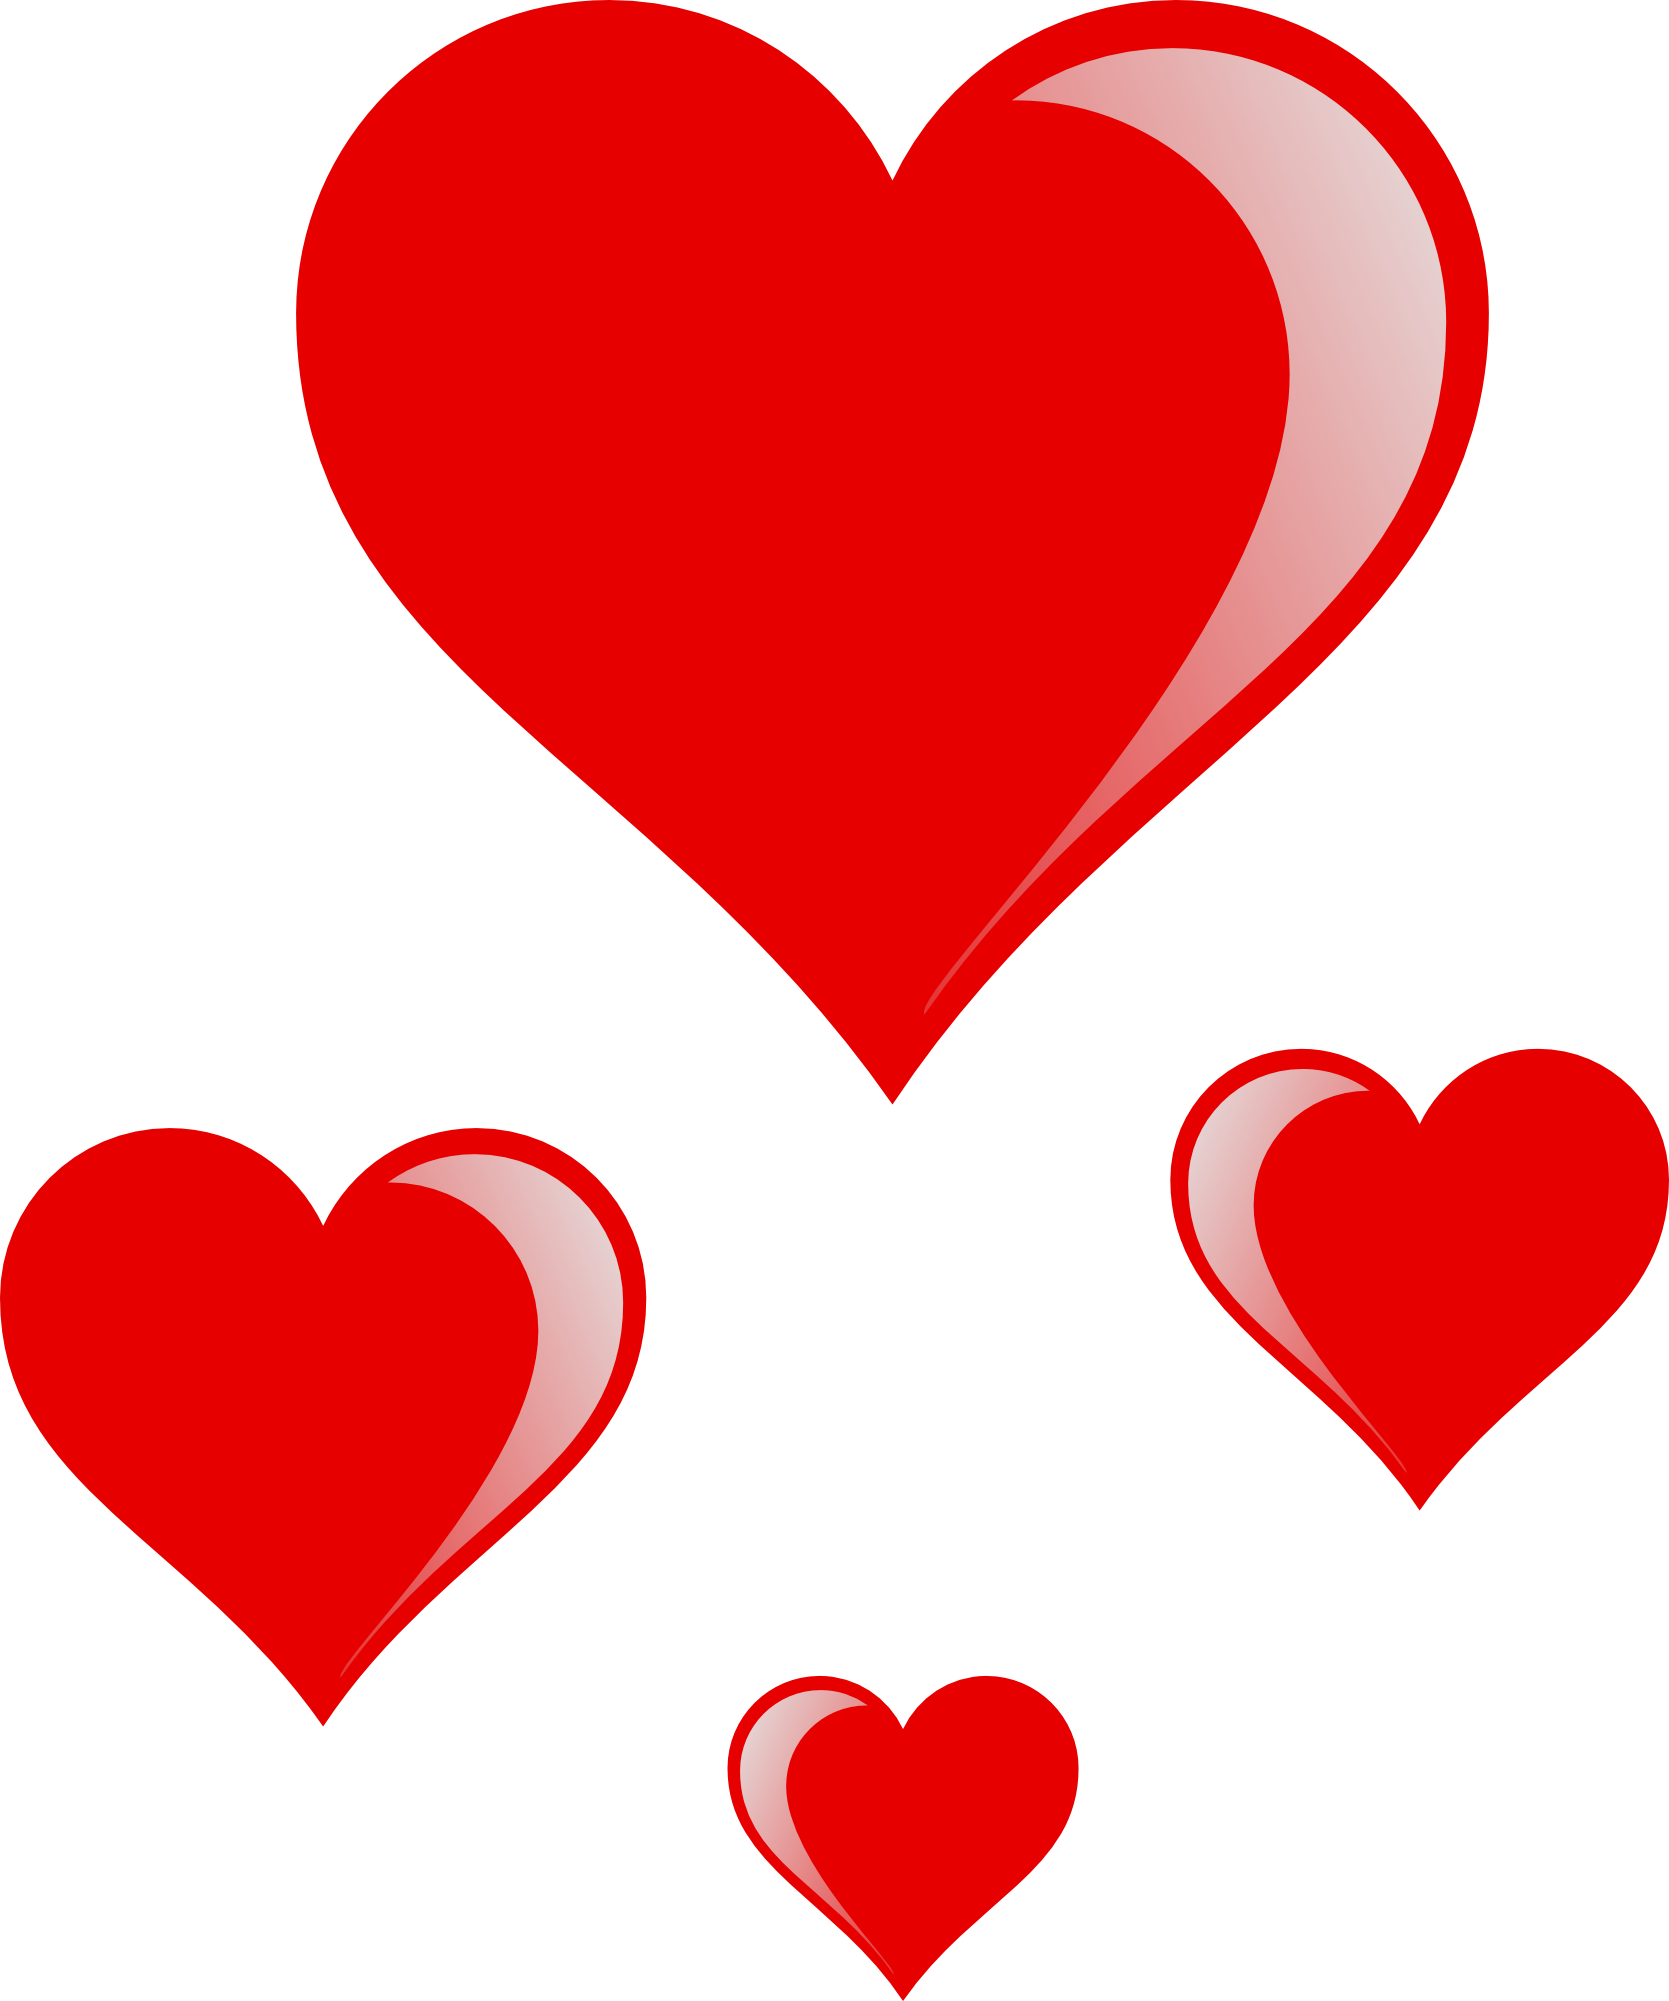 Valentine heart cluster px. Heat clipart mini hearts